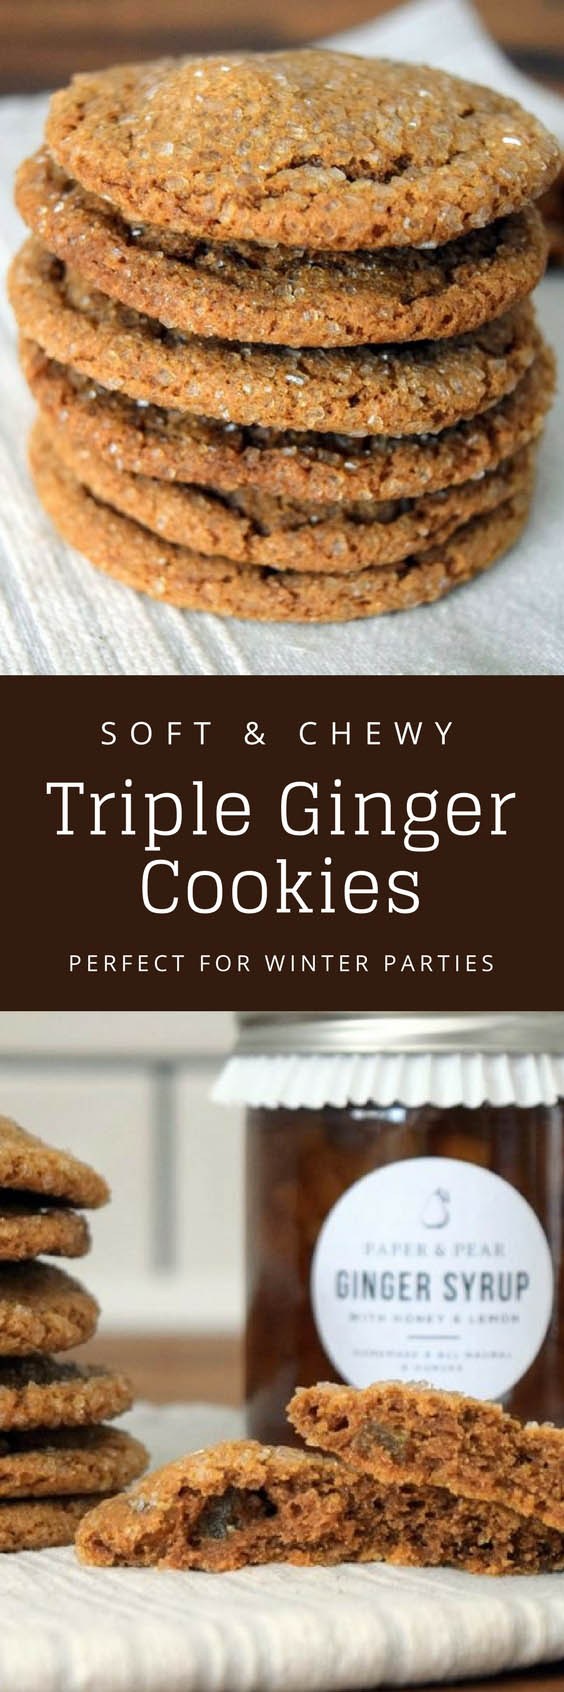 Chewy Triple Ginger Cookies - Pin 3